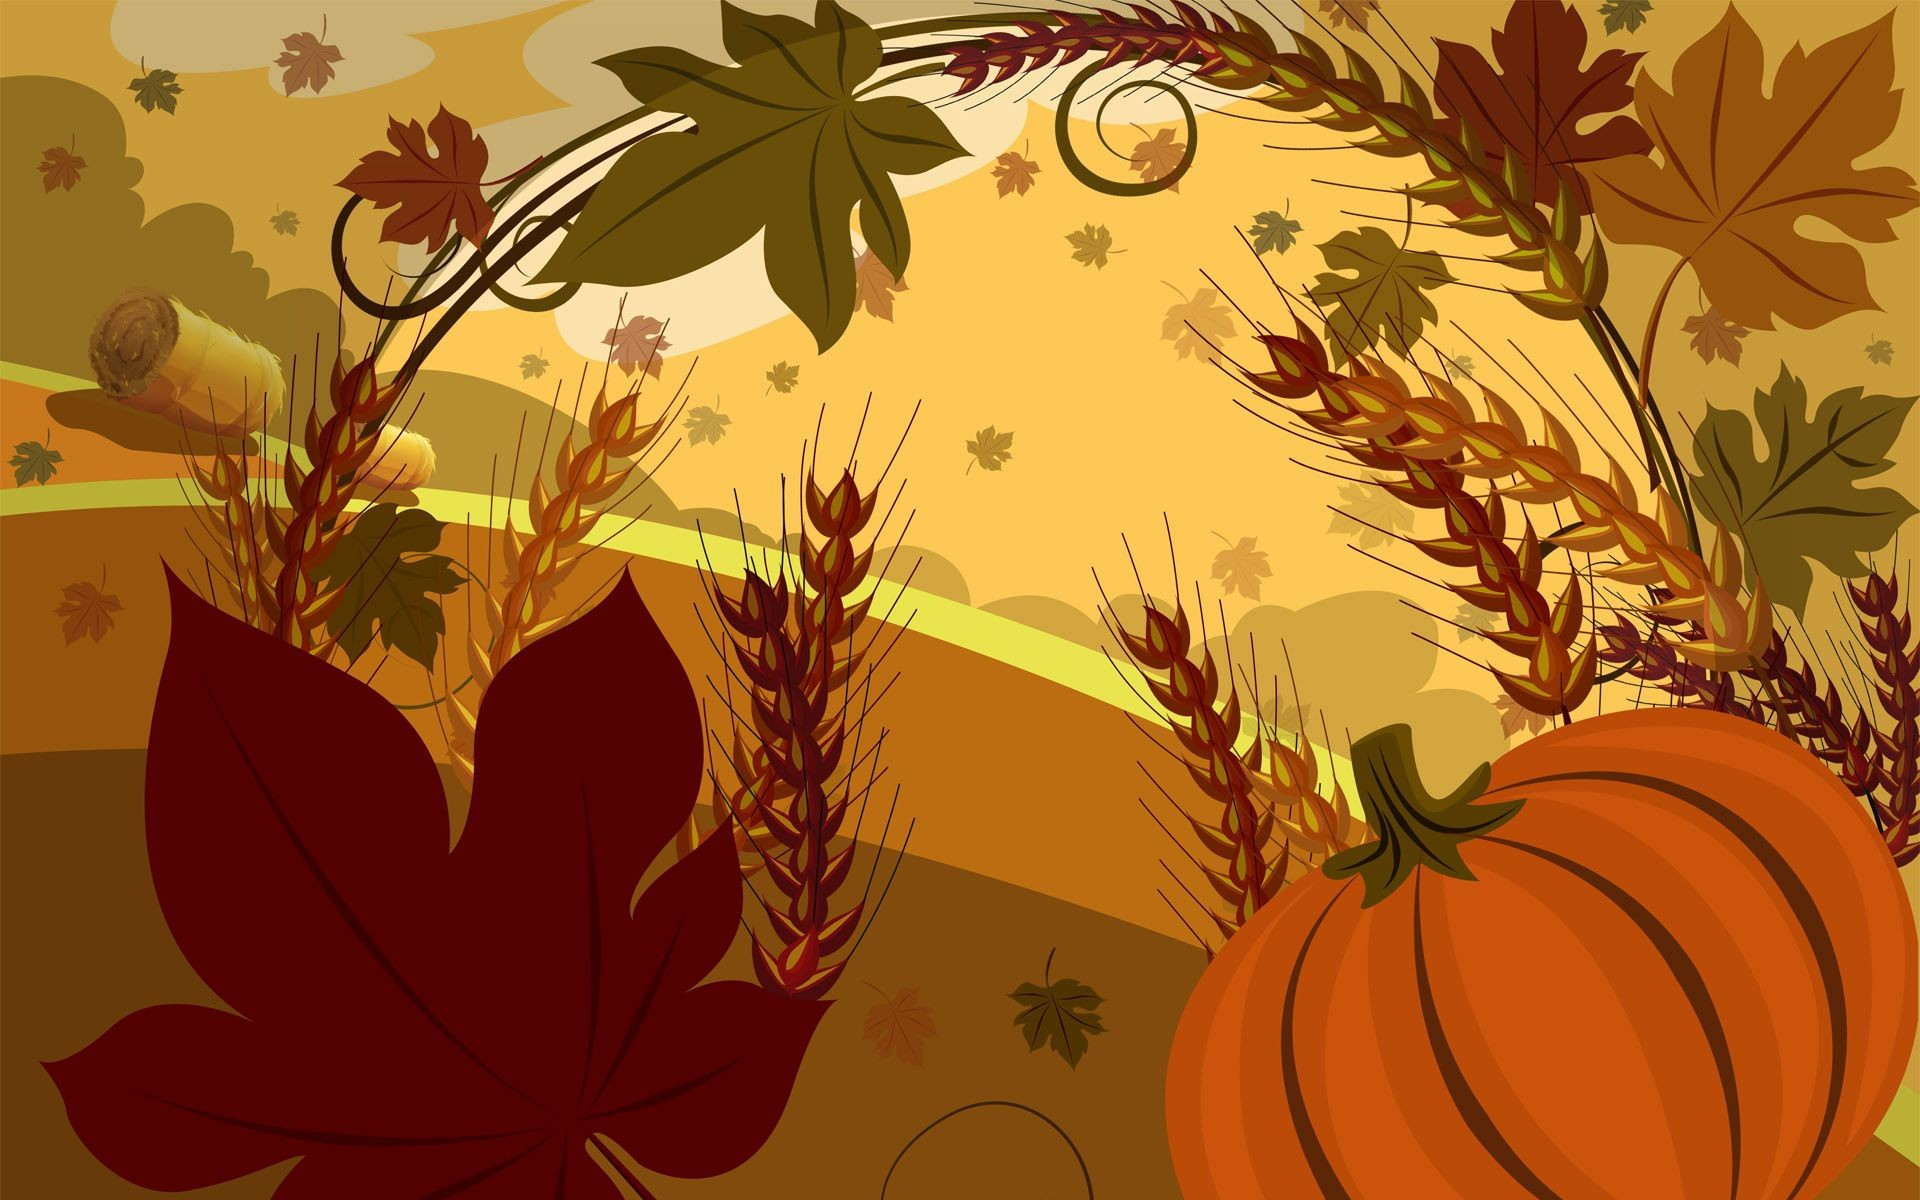 Res: 1920x1200, Free Happy Thanksgiving Wallpapers Wallpaper | HD Wallpapers | Pinterest | Thanksgiving  wallpaper, Wallpaper and Holiday wallpaper